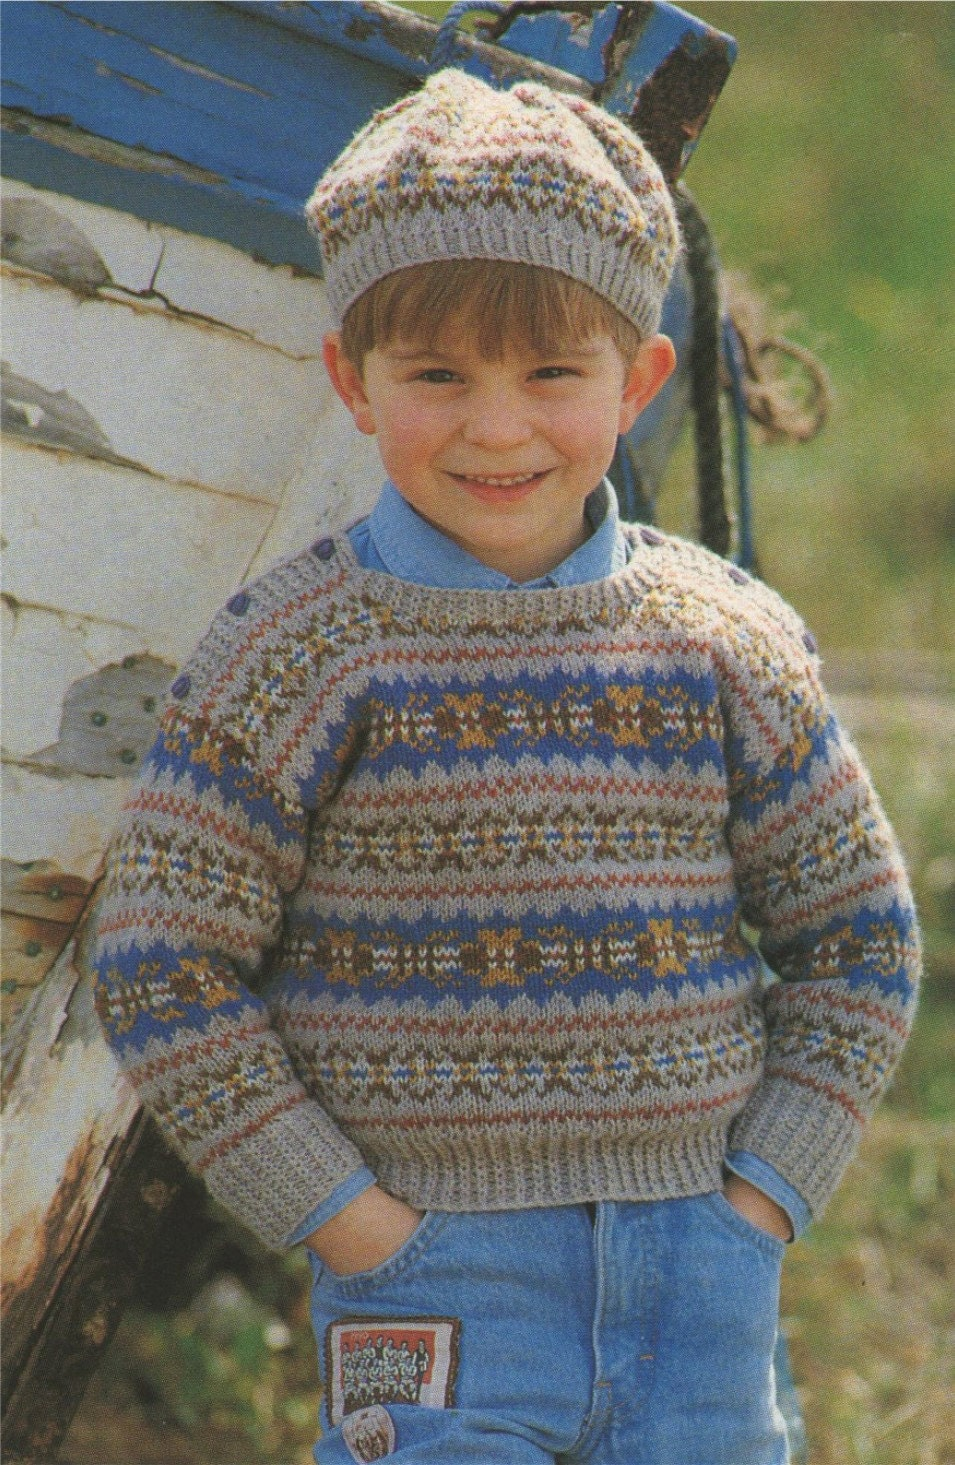 Knitting Patterns For Toddler Boy Sweaters : Childrens Fair Isle Sweater and Beret Knitting Pattern ...